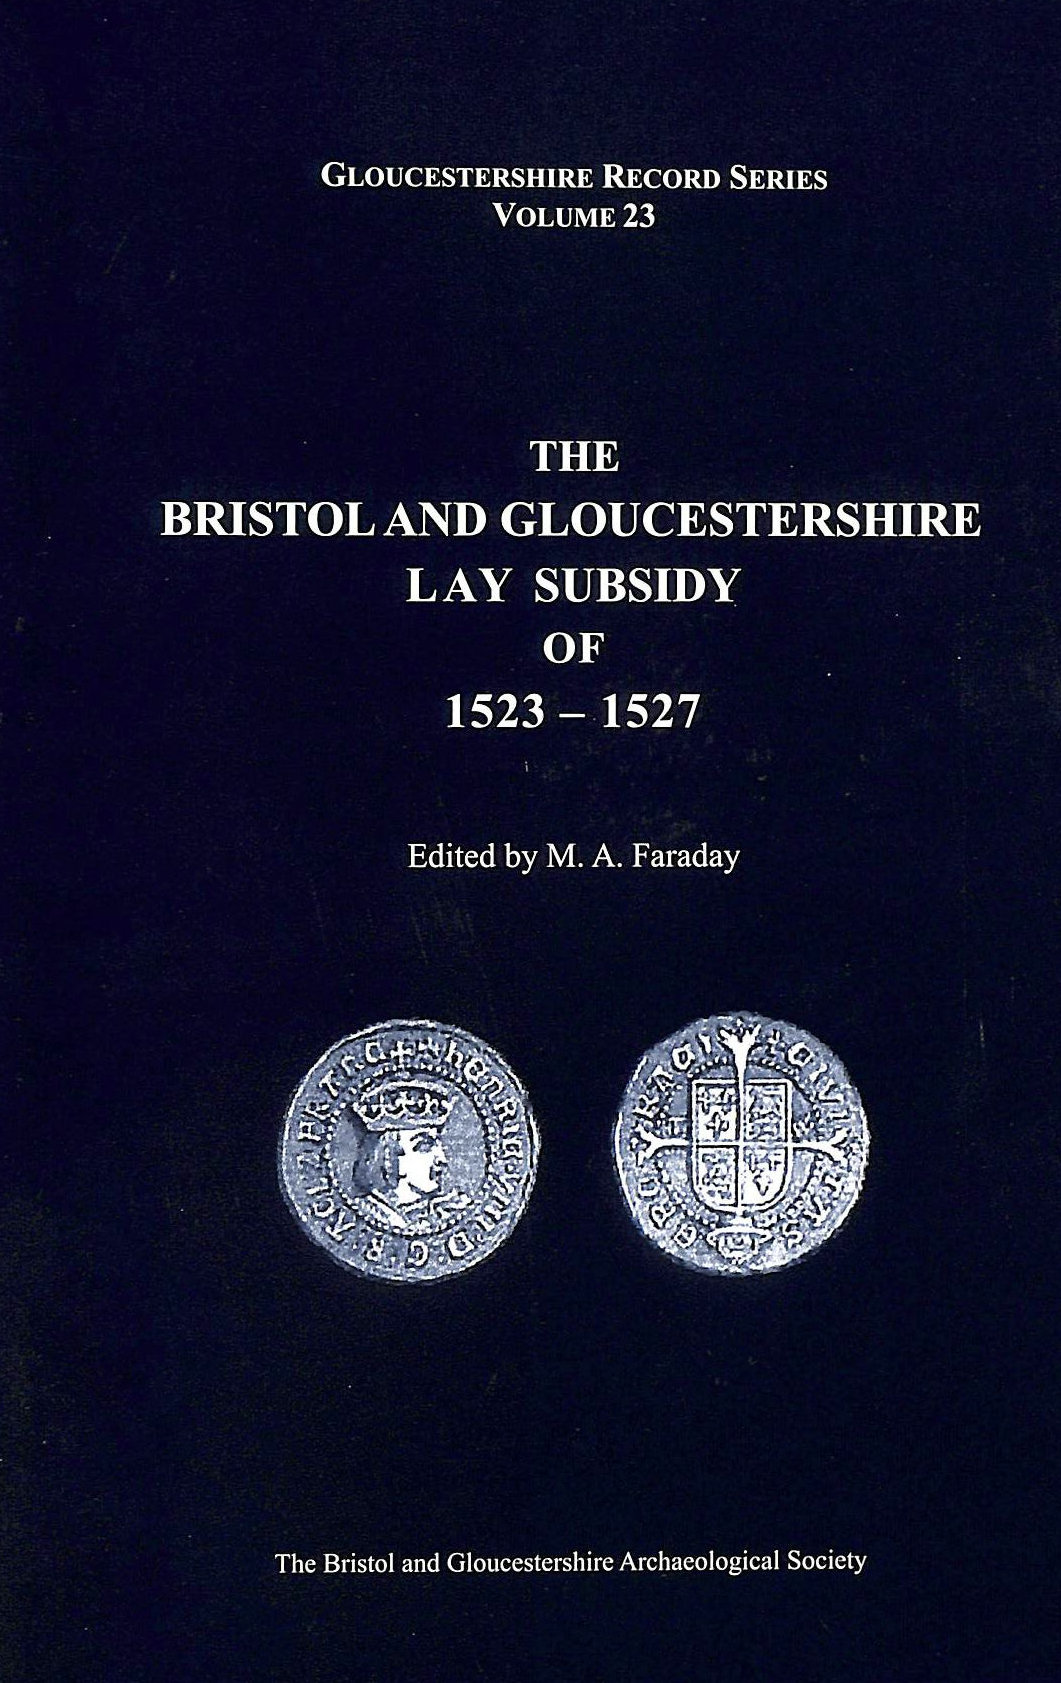 Image for The Bristol and Gloucestershire Lay Subsidy of 1523-1527: v. 23 (Bristol and Gloucestershire Archaeological Society Gloucestershire Record Series)